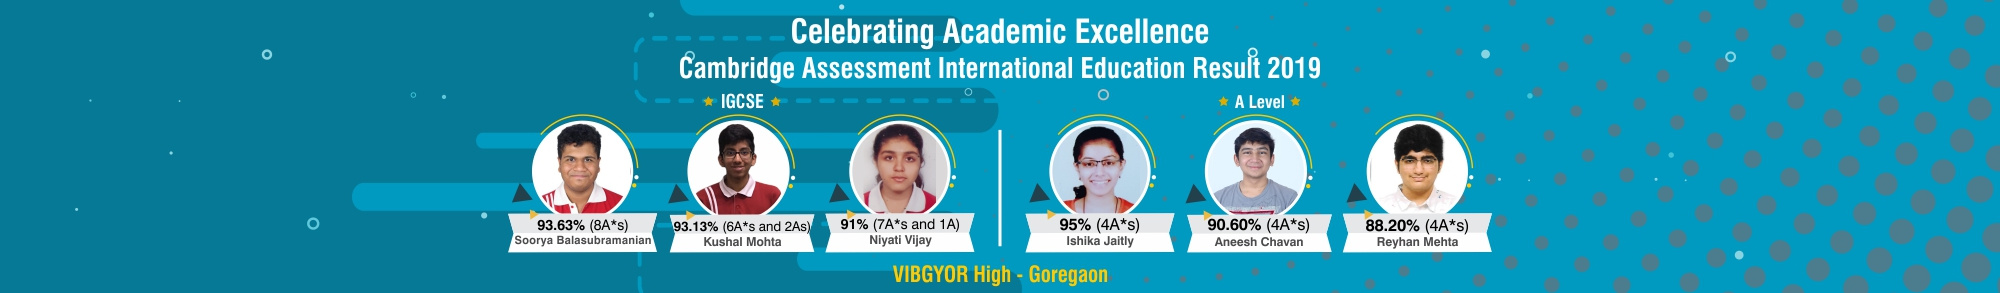 ICSE | IGCSE | International Schools in Mumbai - VIBGYOR High